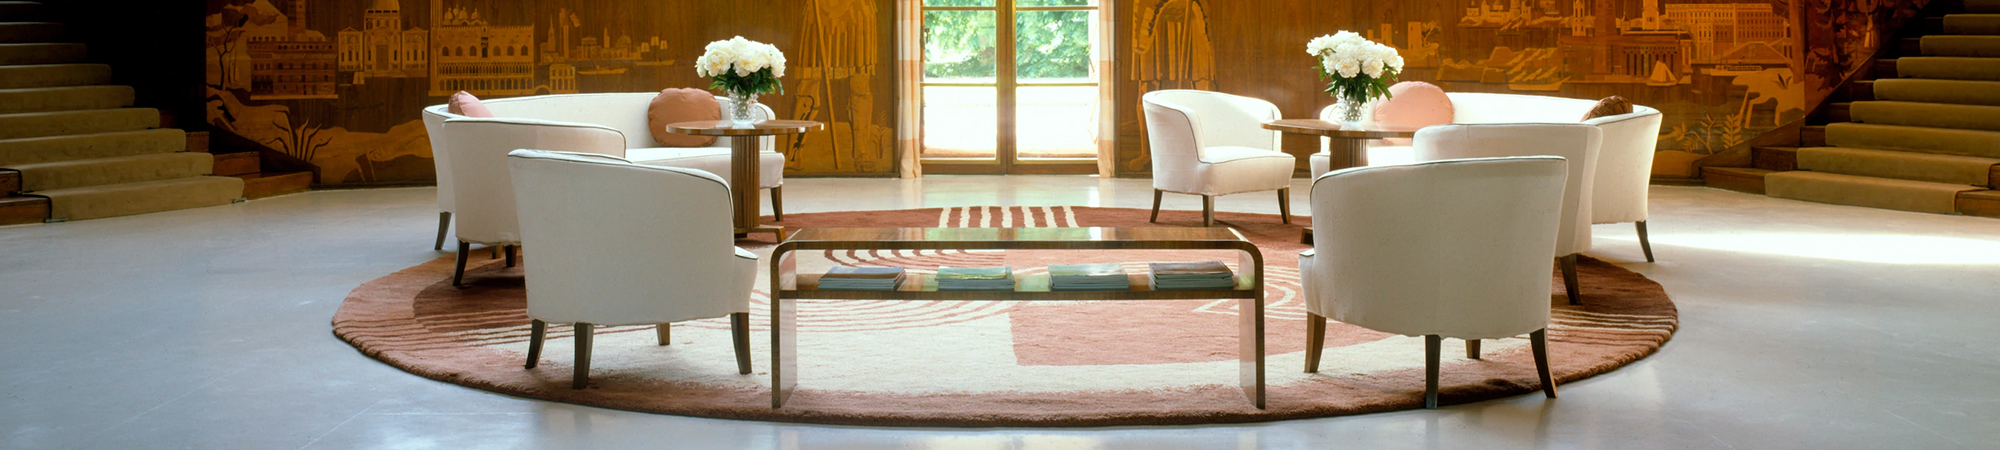 History of interior styles and furniture baroque to mid century modern klc school of design